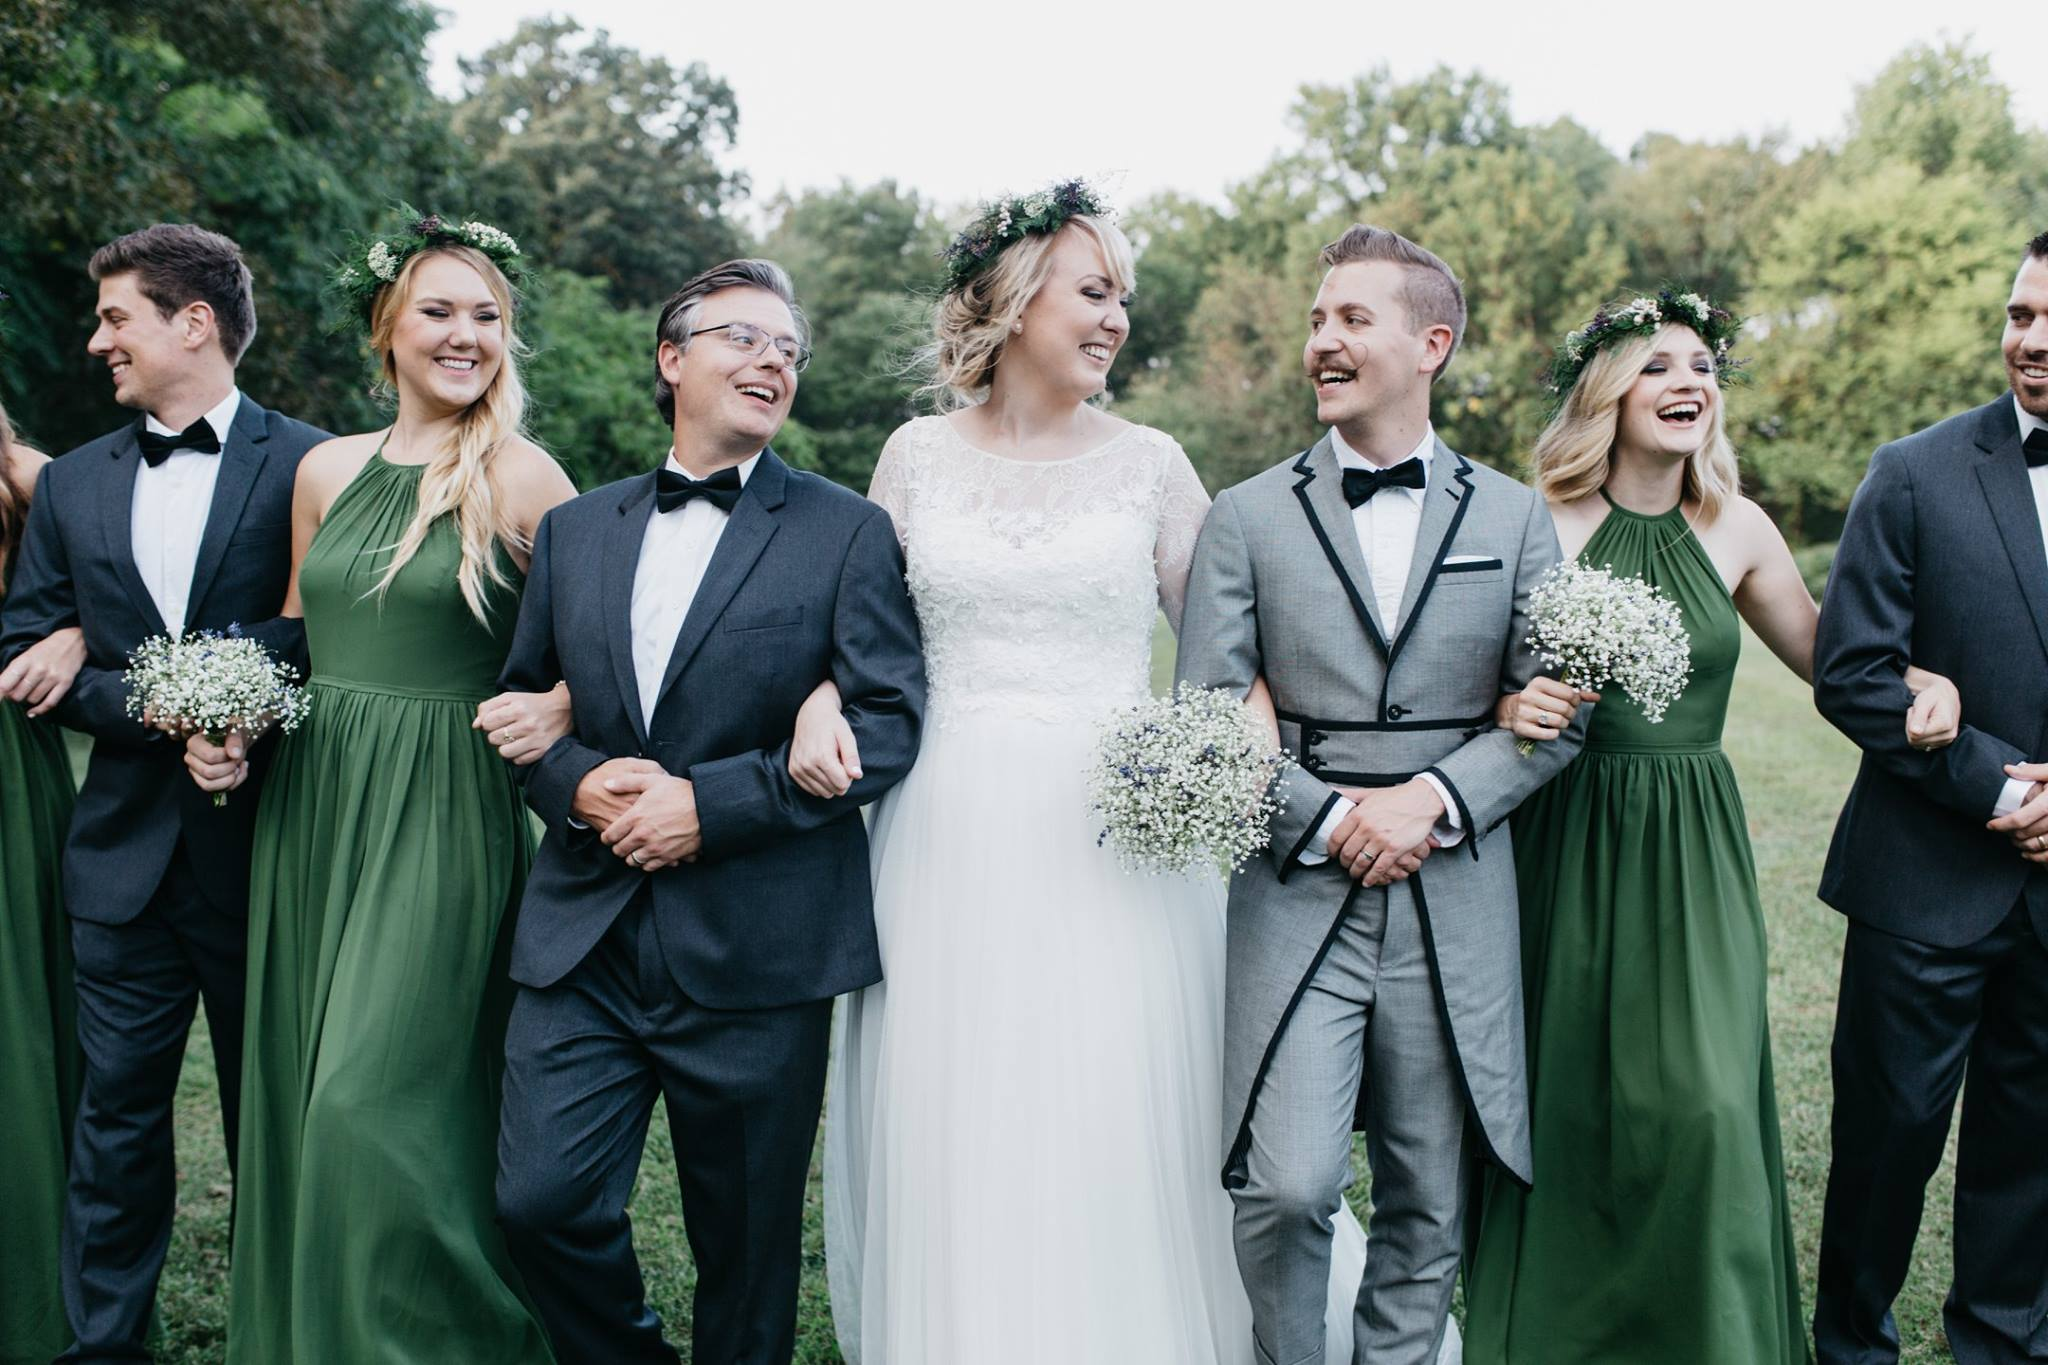 wedding party with green bridesmaid dresses and baby's breath bouquets